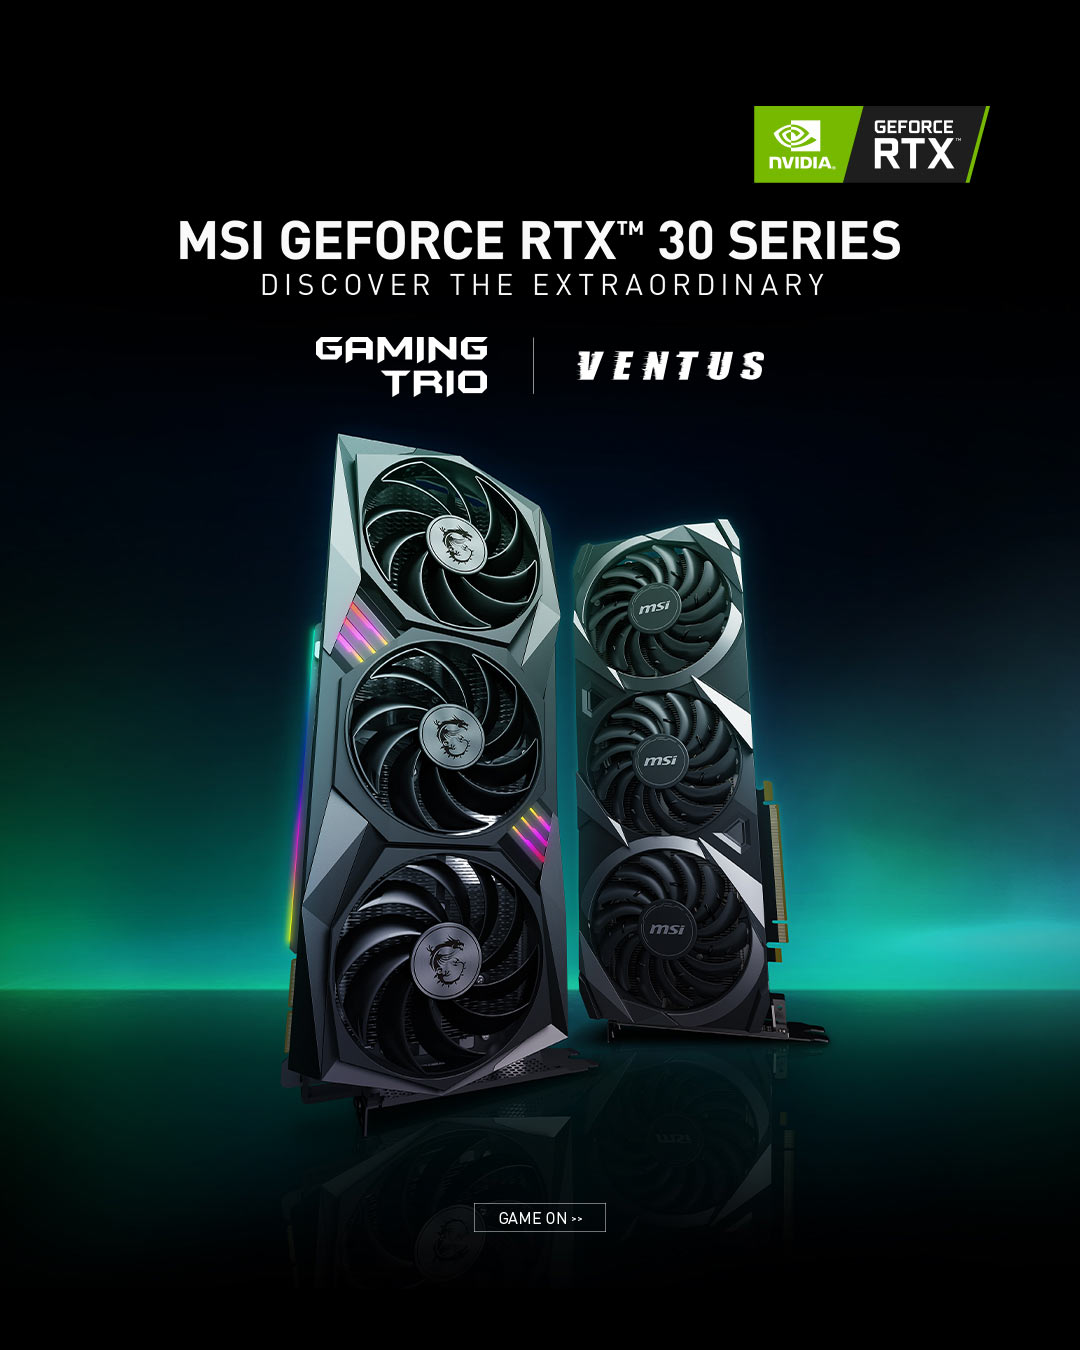 GeForce RTX 30 Series